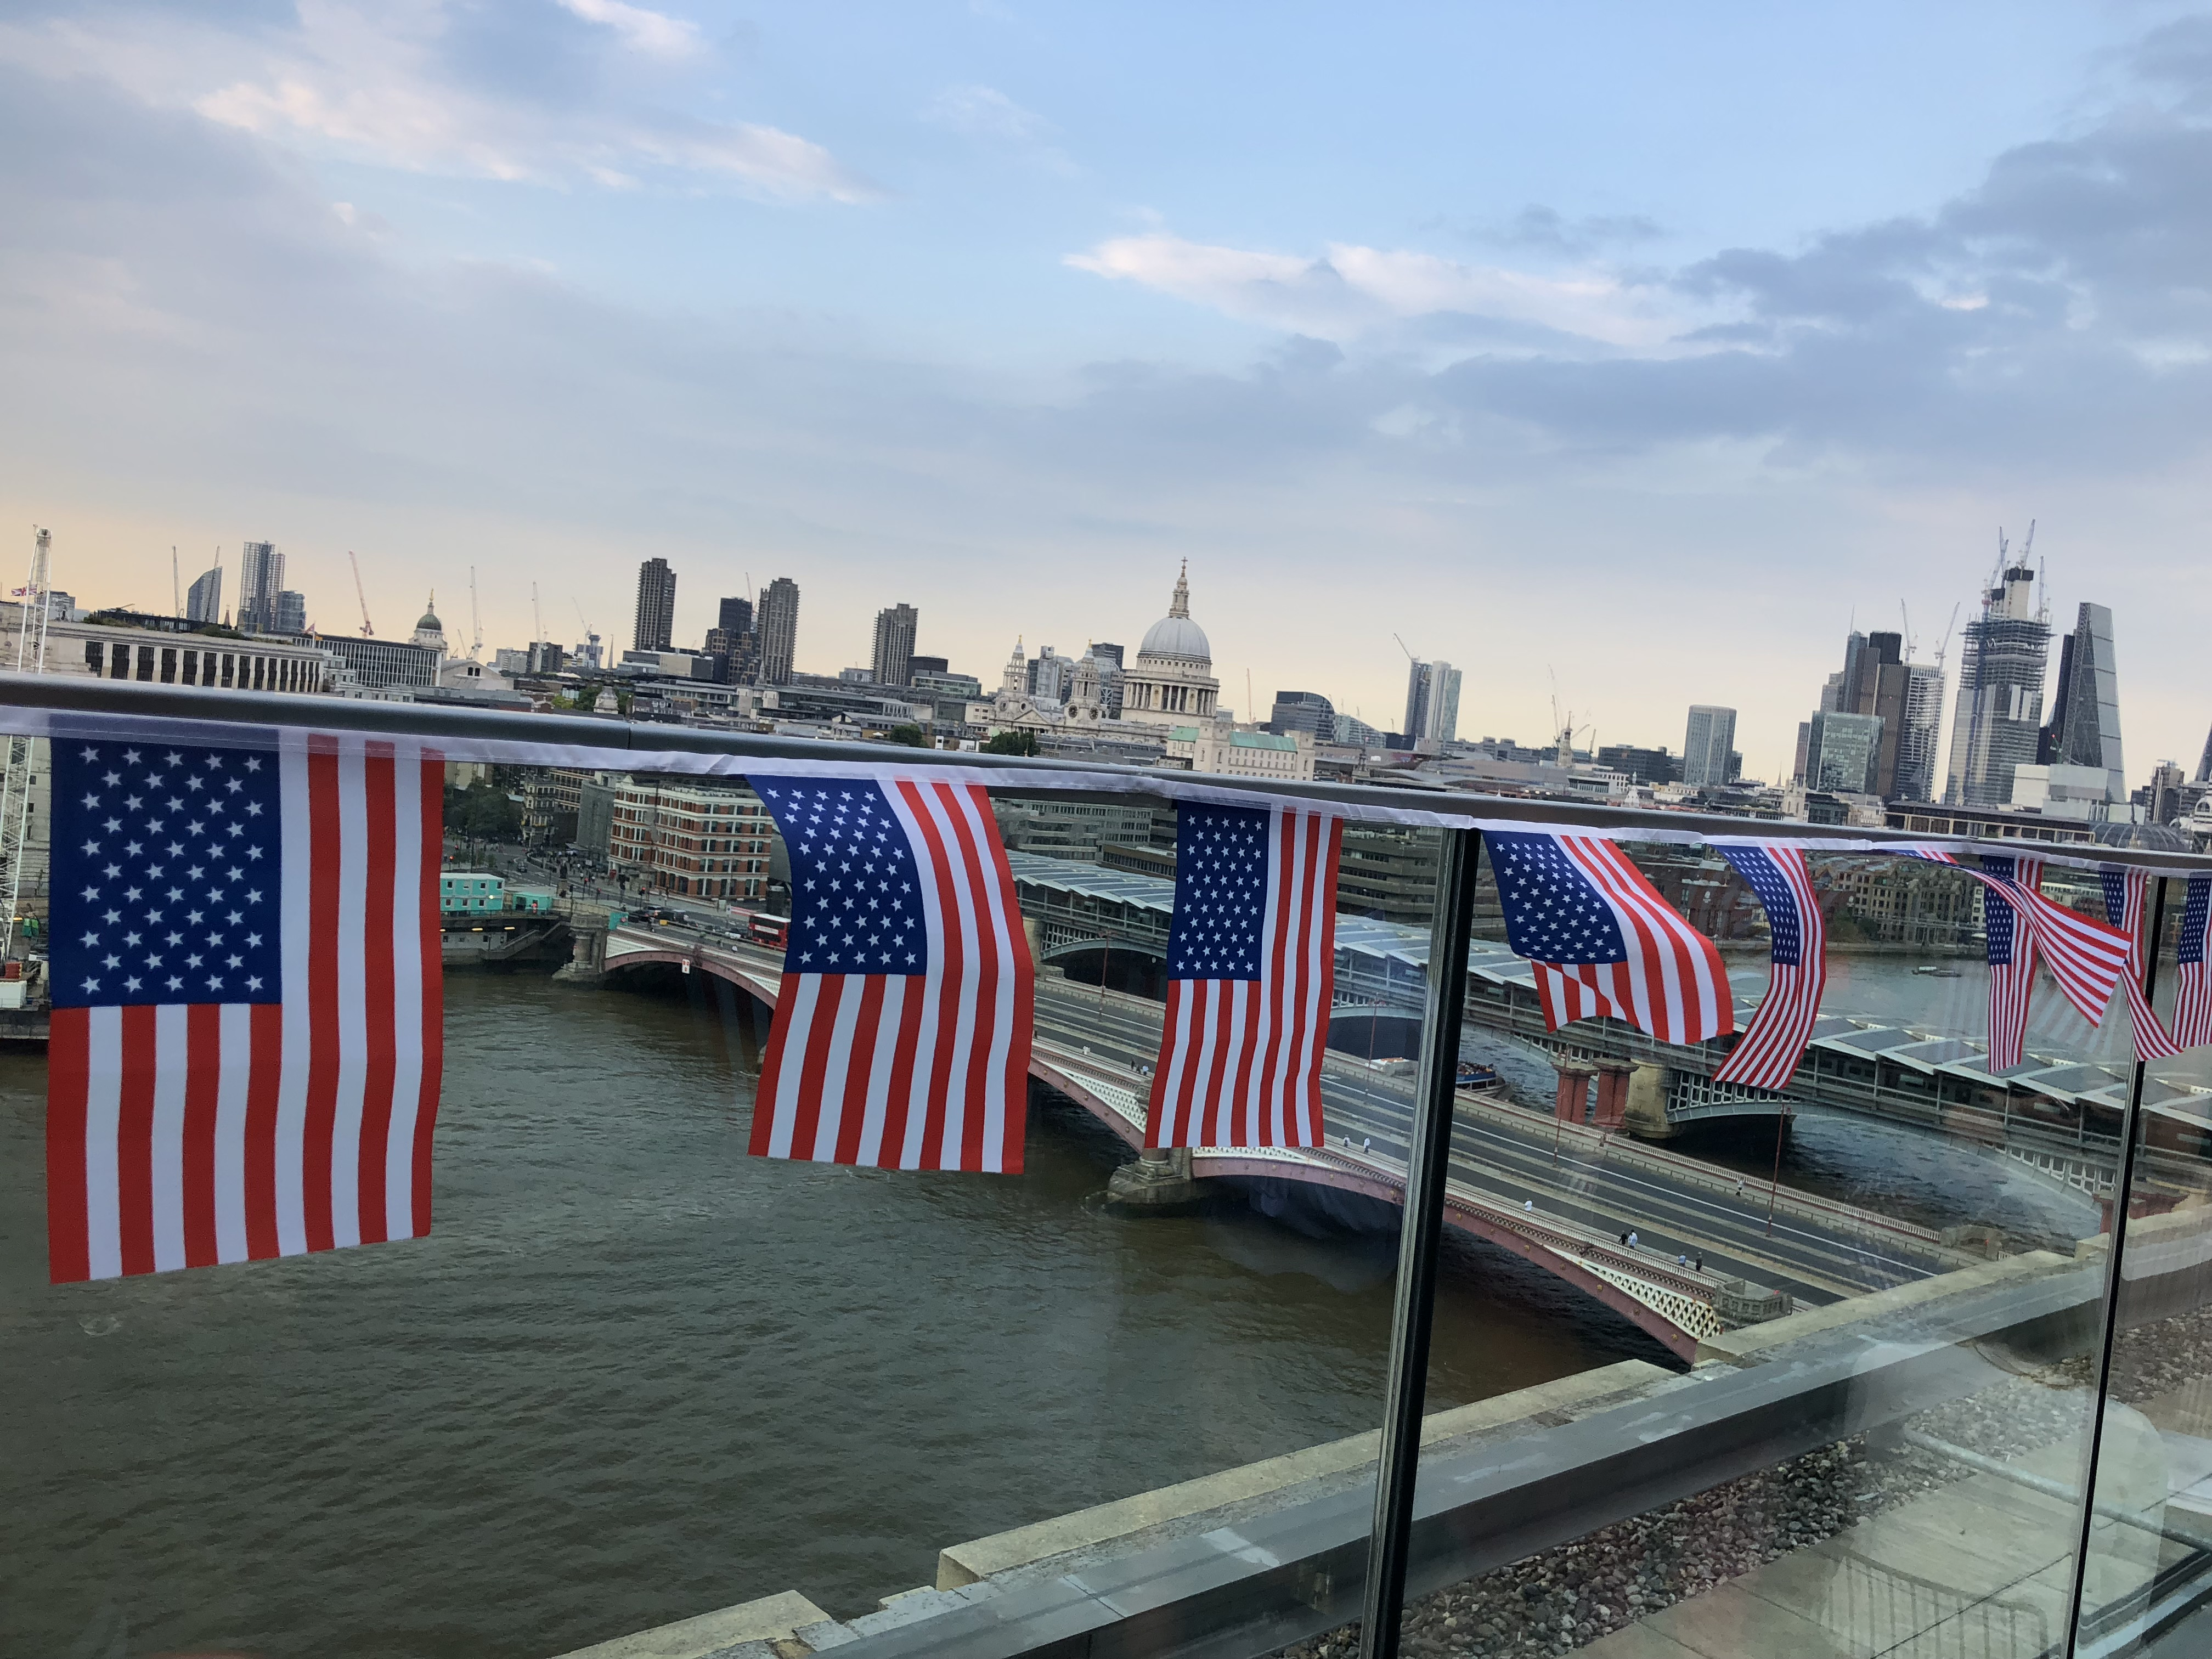 4th of July celebrations at The Mondrian, London 7